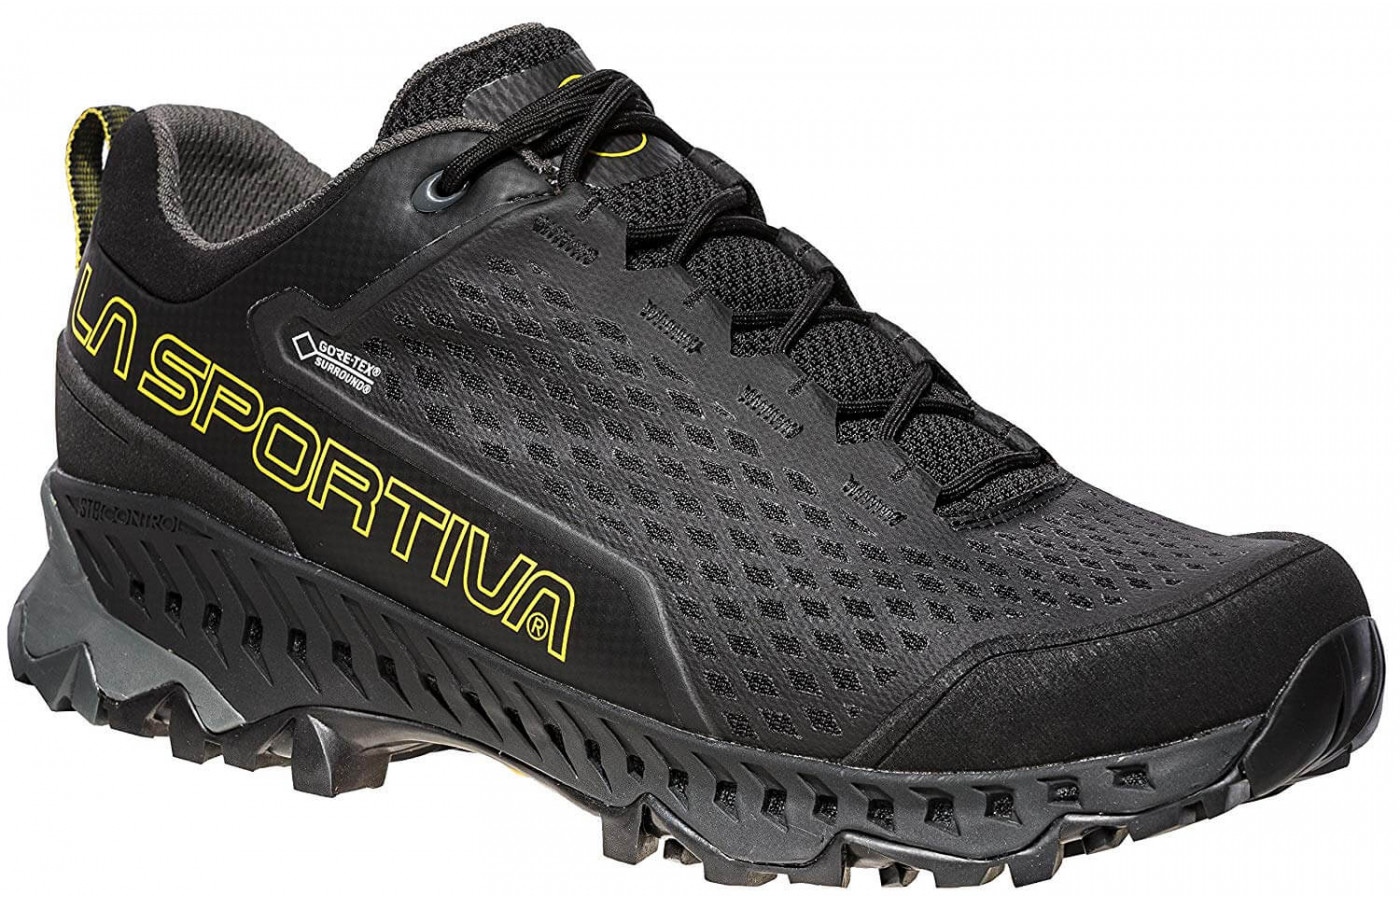 The Spire GTX is available in black or blue.